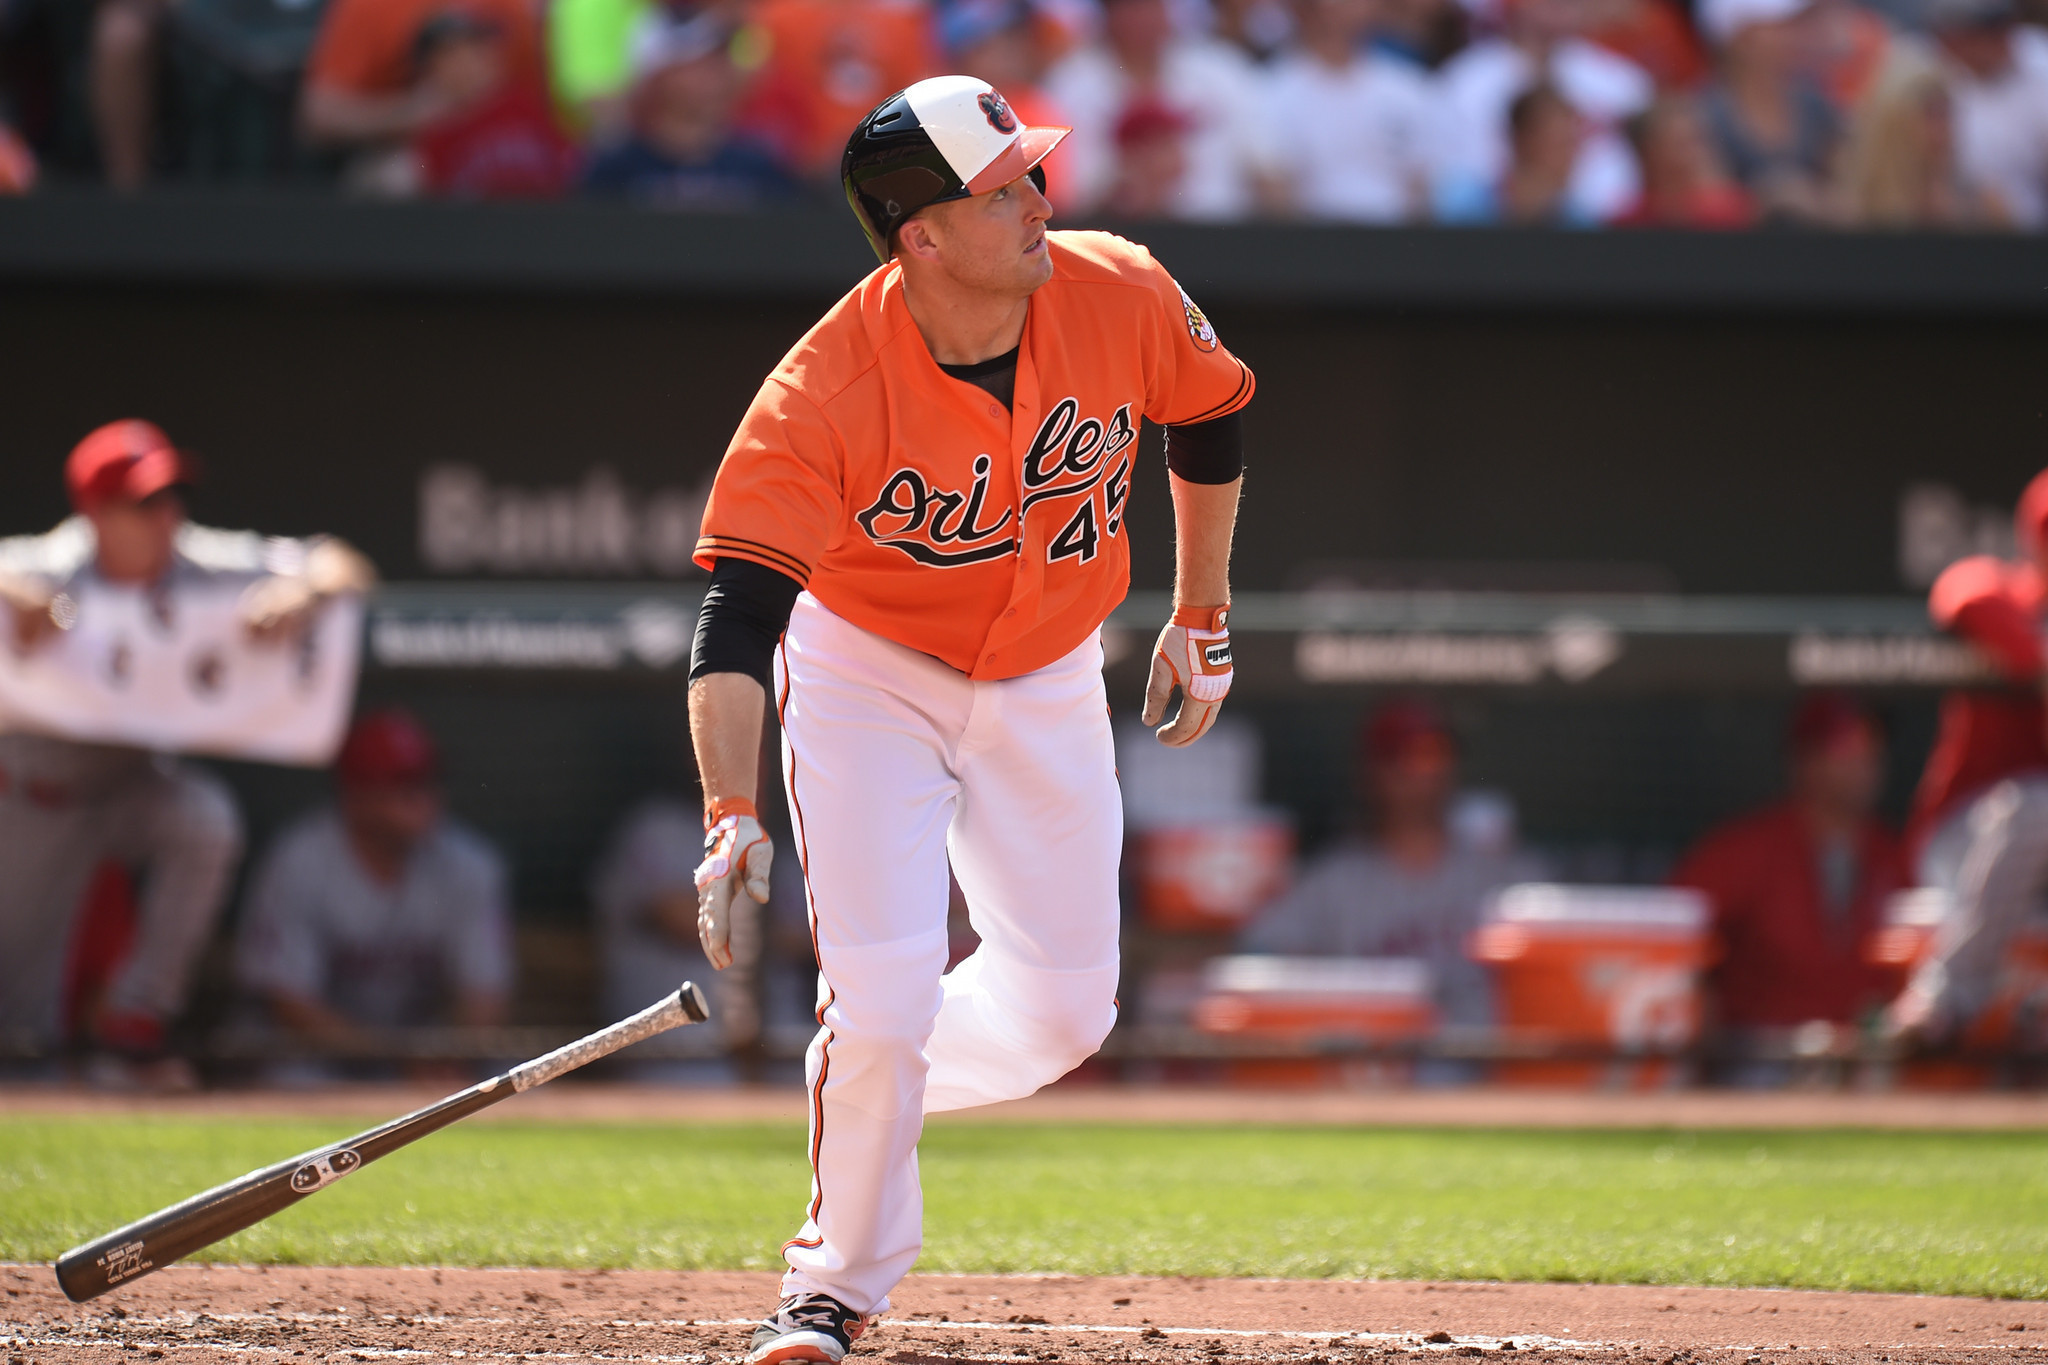 Bal-duquette-orioles-have-made-several-offers-to-mark-trumbo-outfield-catcher-are-priorities-20161204